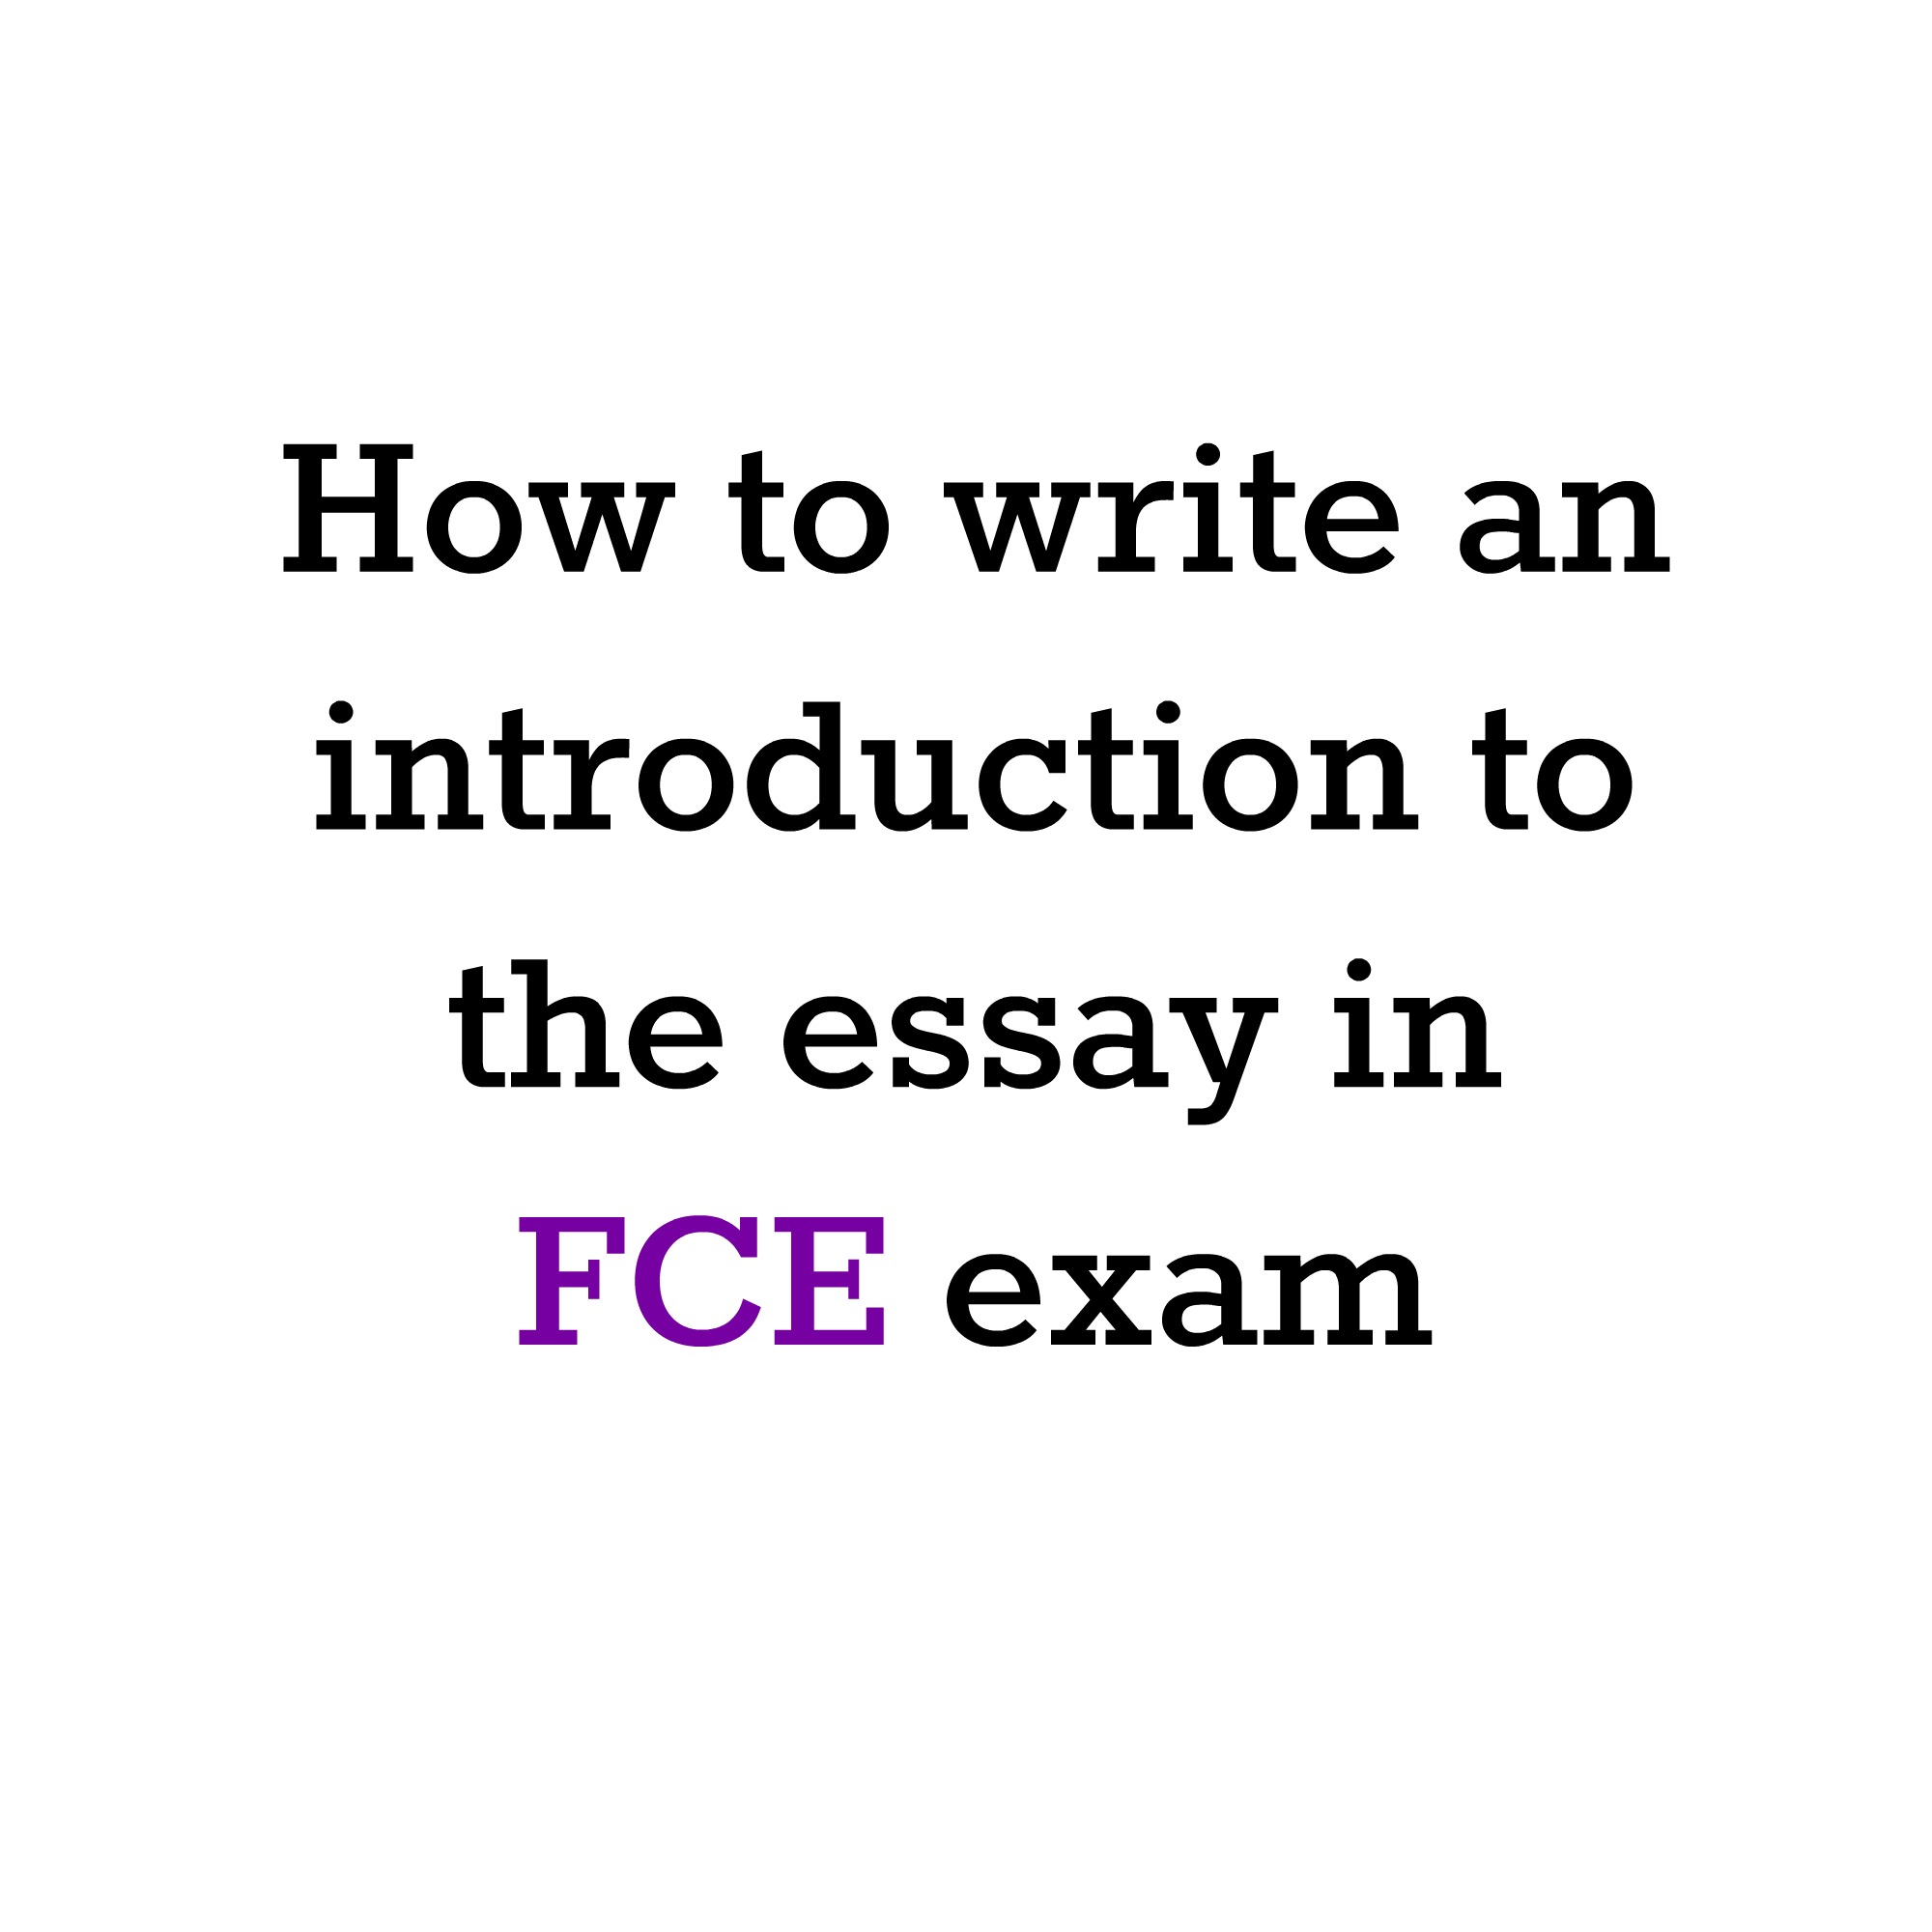 fce writing part 1 essay a english exam help how to write an introduction to the essay in fce exam